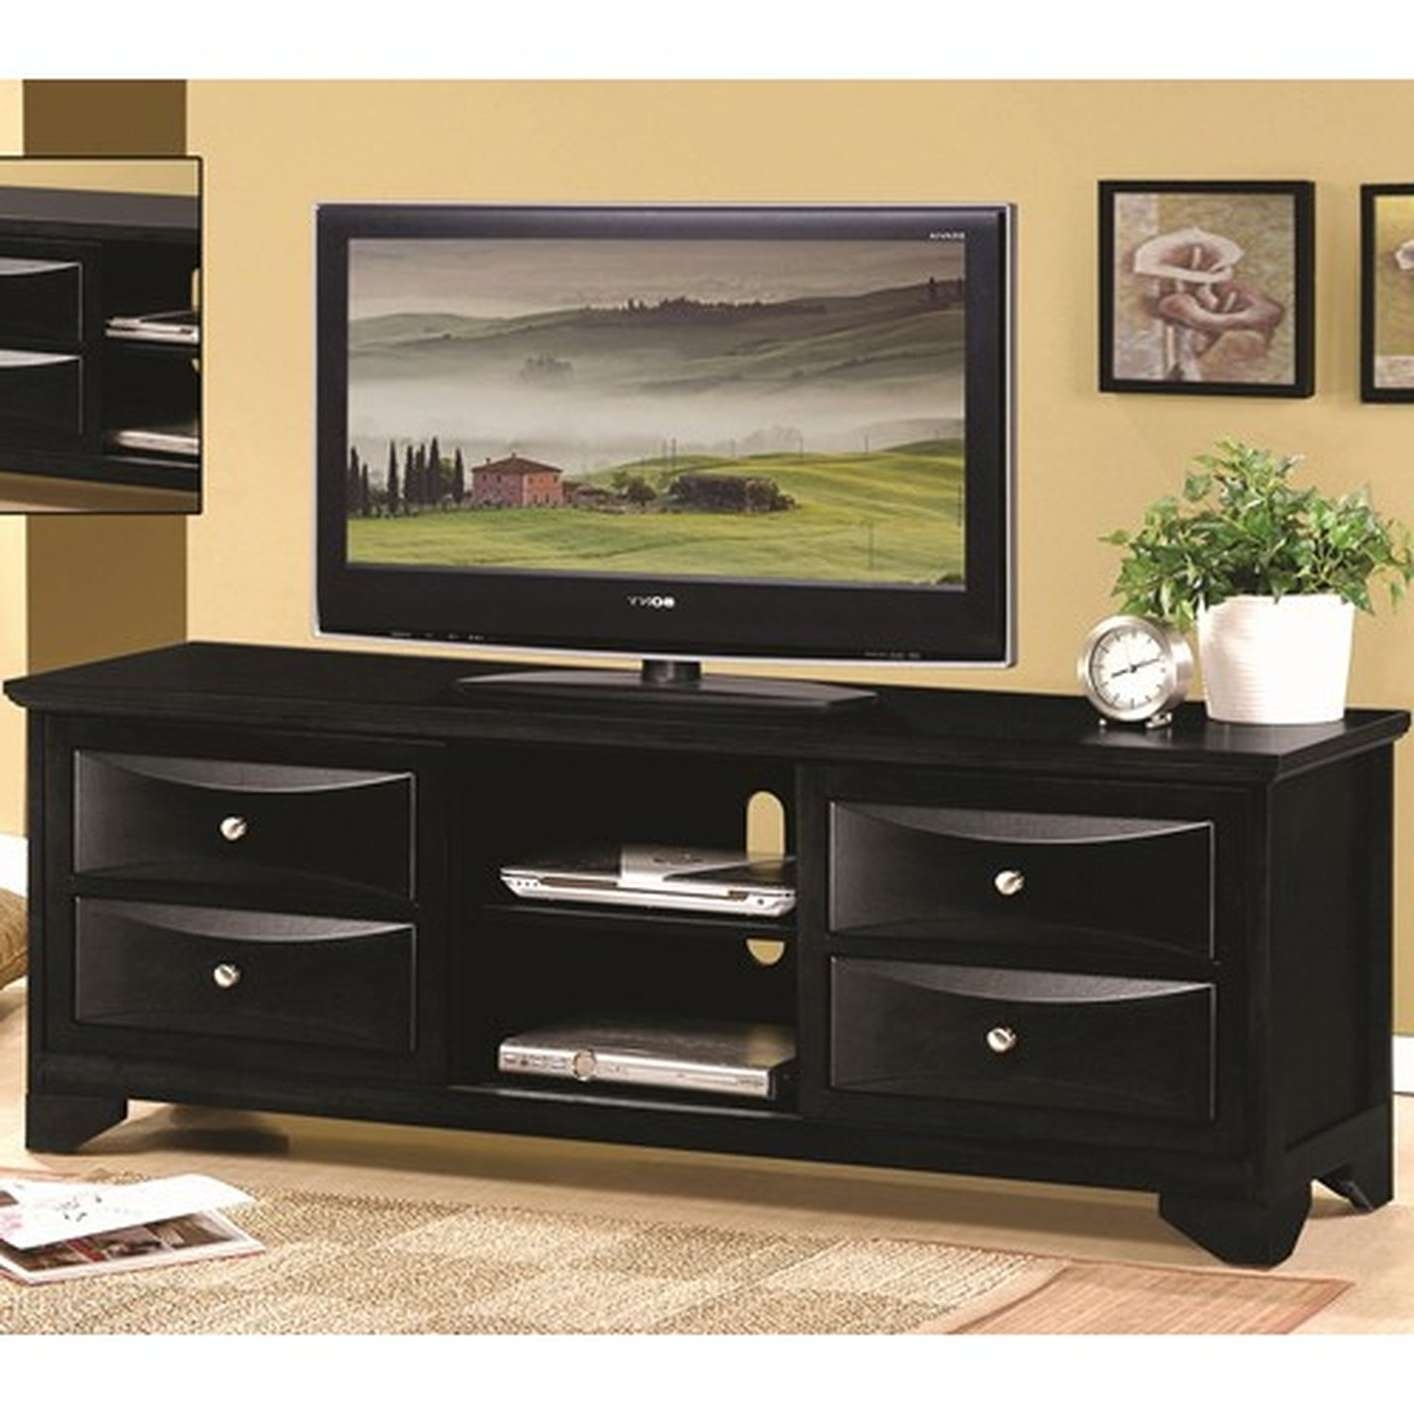 Black Wood Tv Stand – Steal A Sofa Furniture Outlet Los Angeles Ca With Regard To Black Tv Cabinets With Drawers (View 3 of 20)